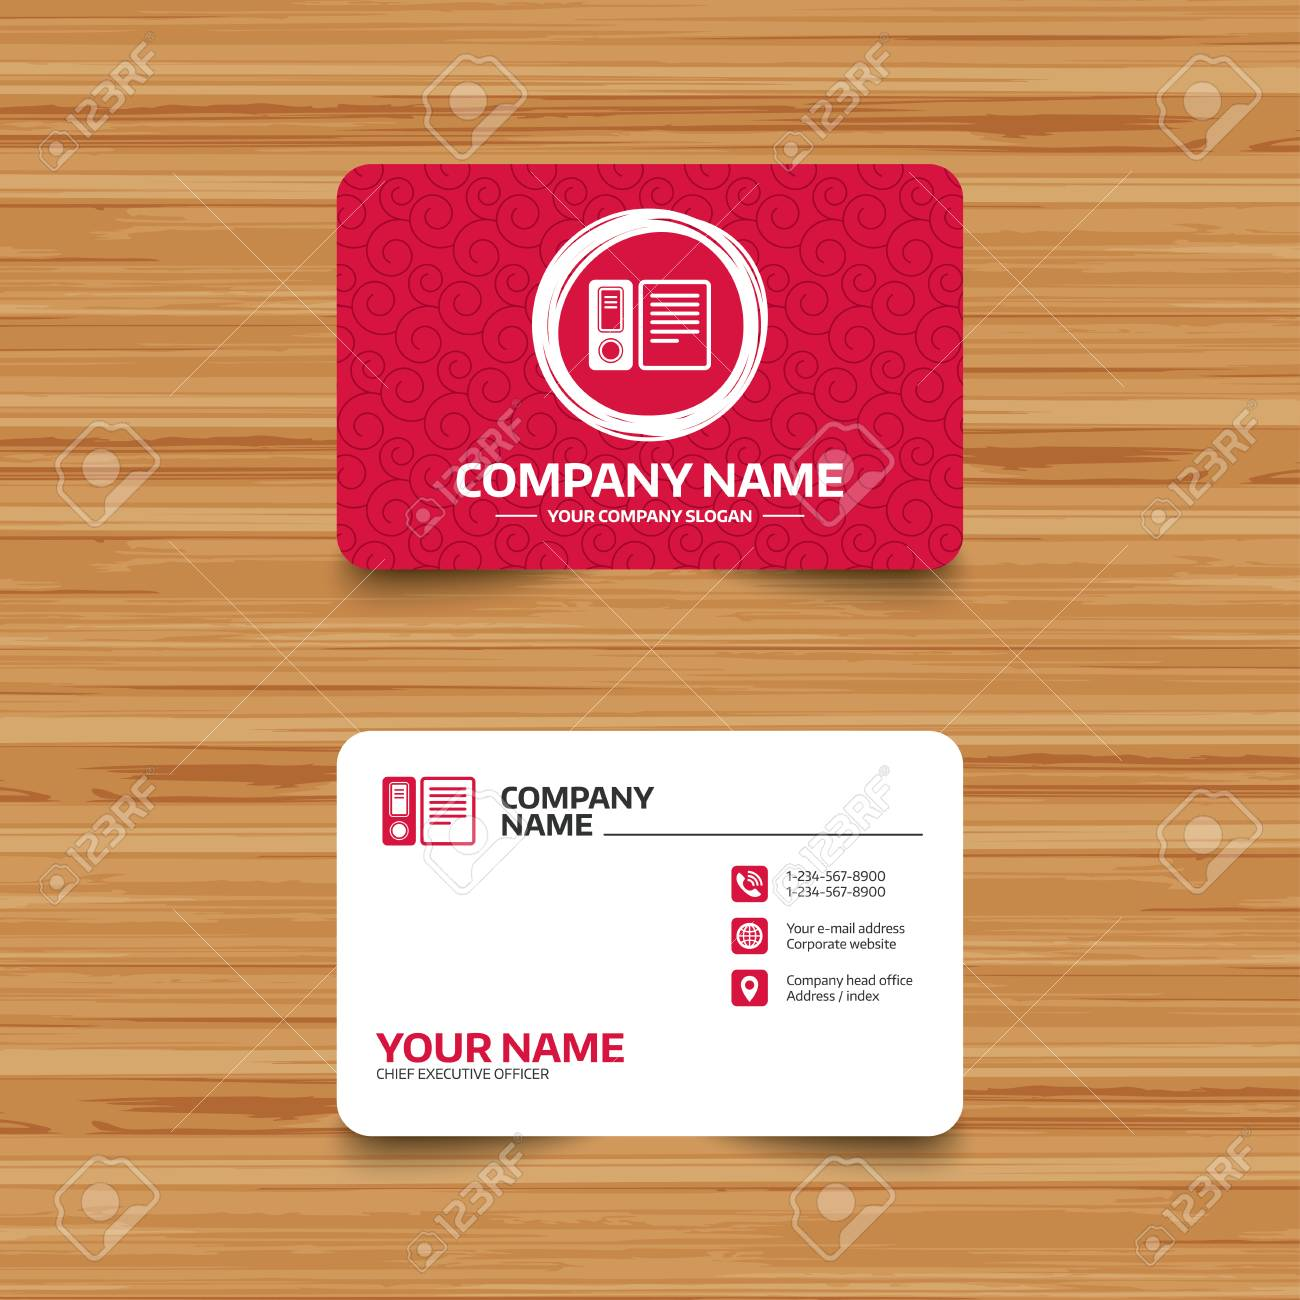 Business card template with texture document folder sign business card template with texture document folder sign accounting binder symbol bookkeeping management wajeb Images